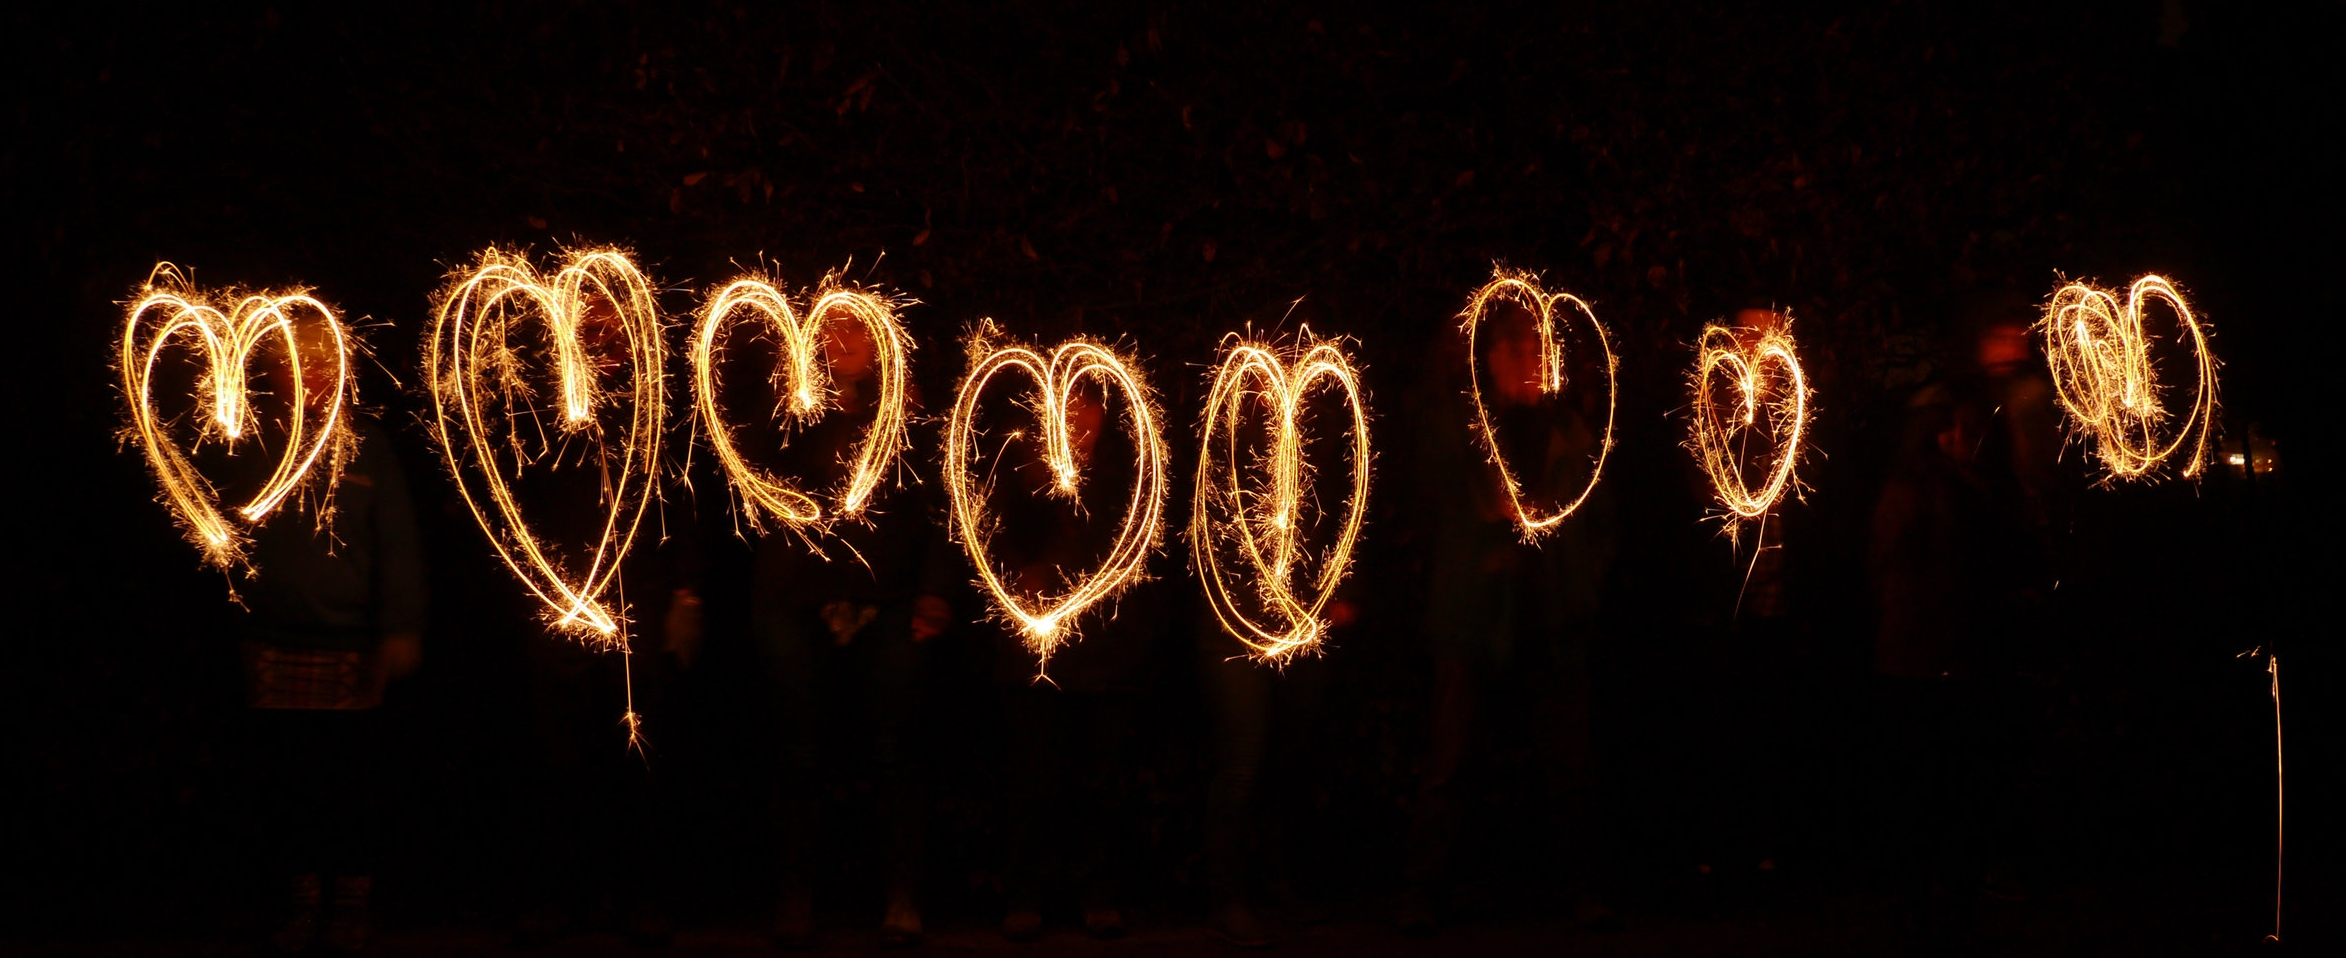 Heart y sparkler writing